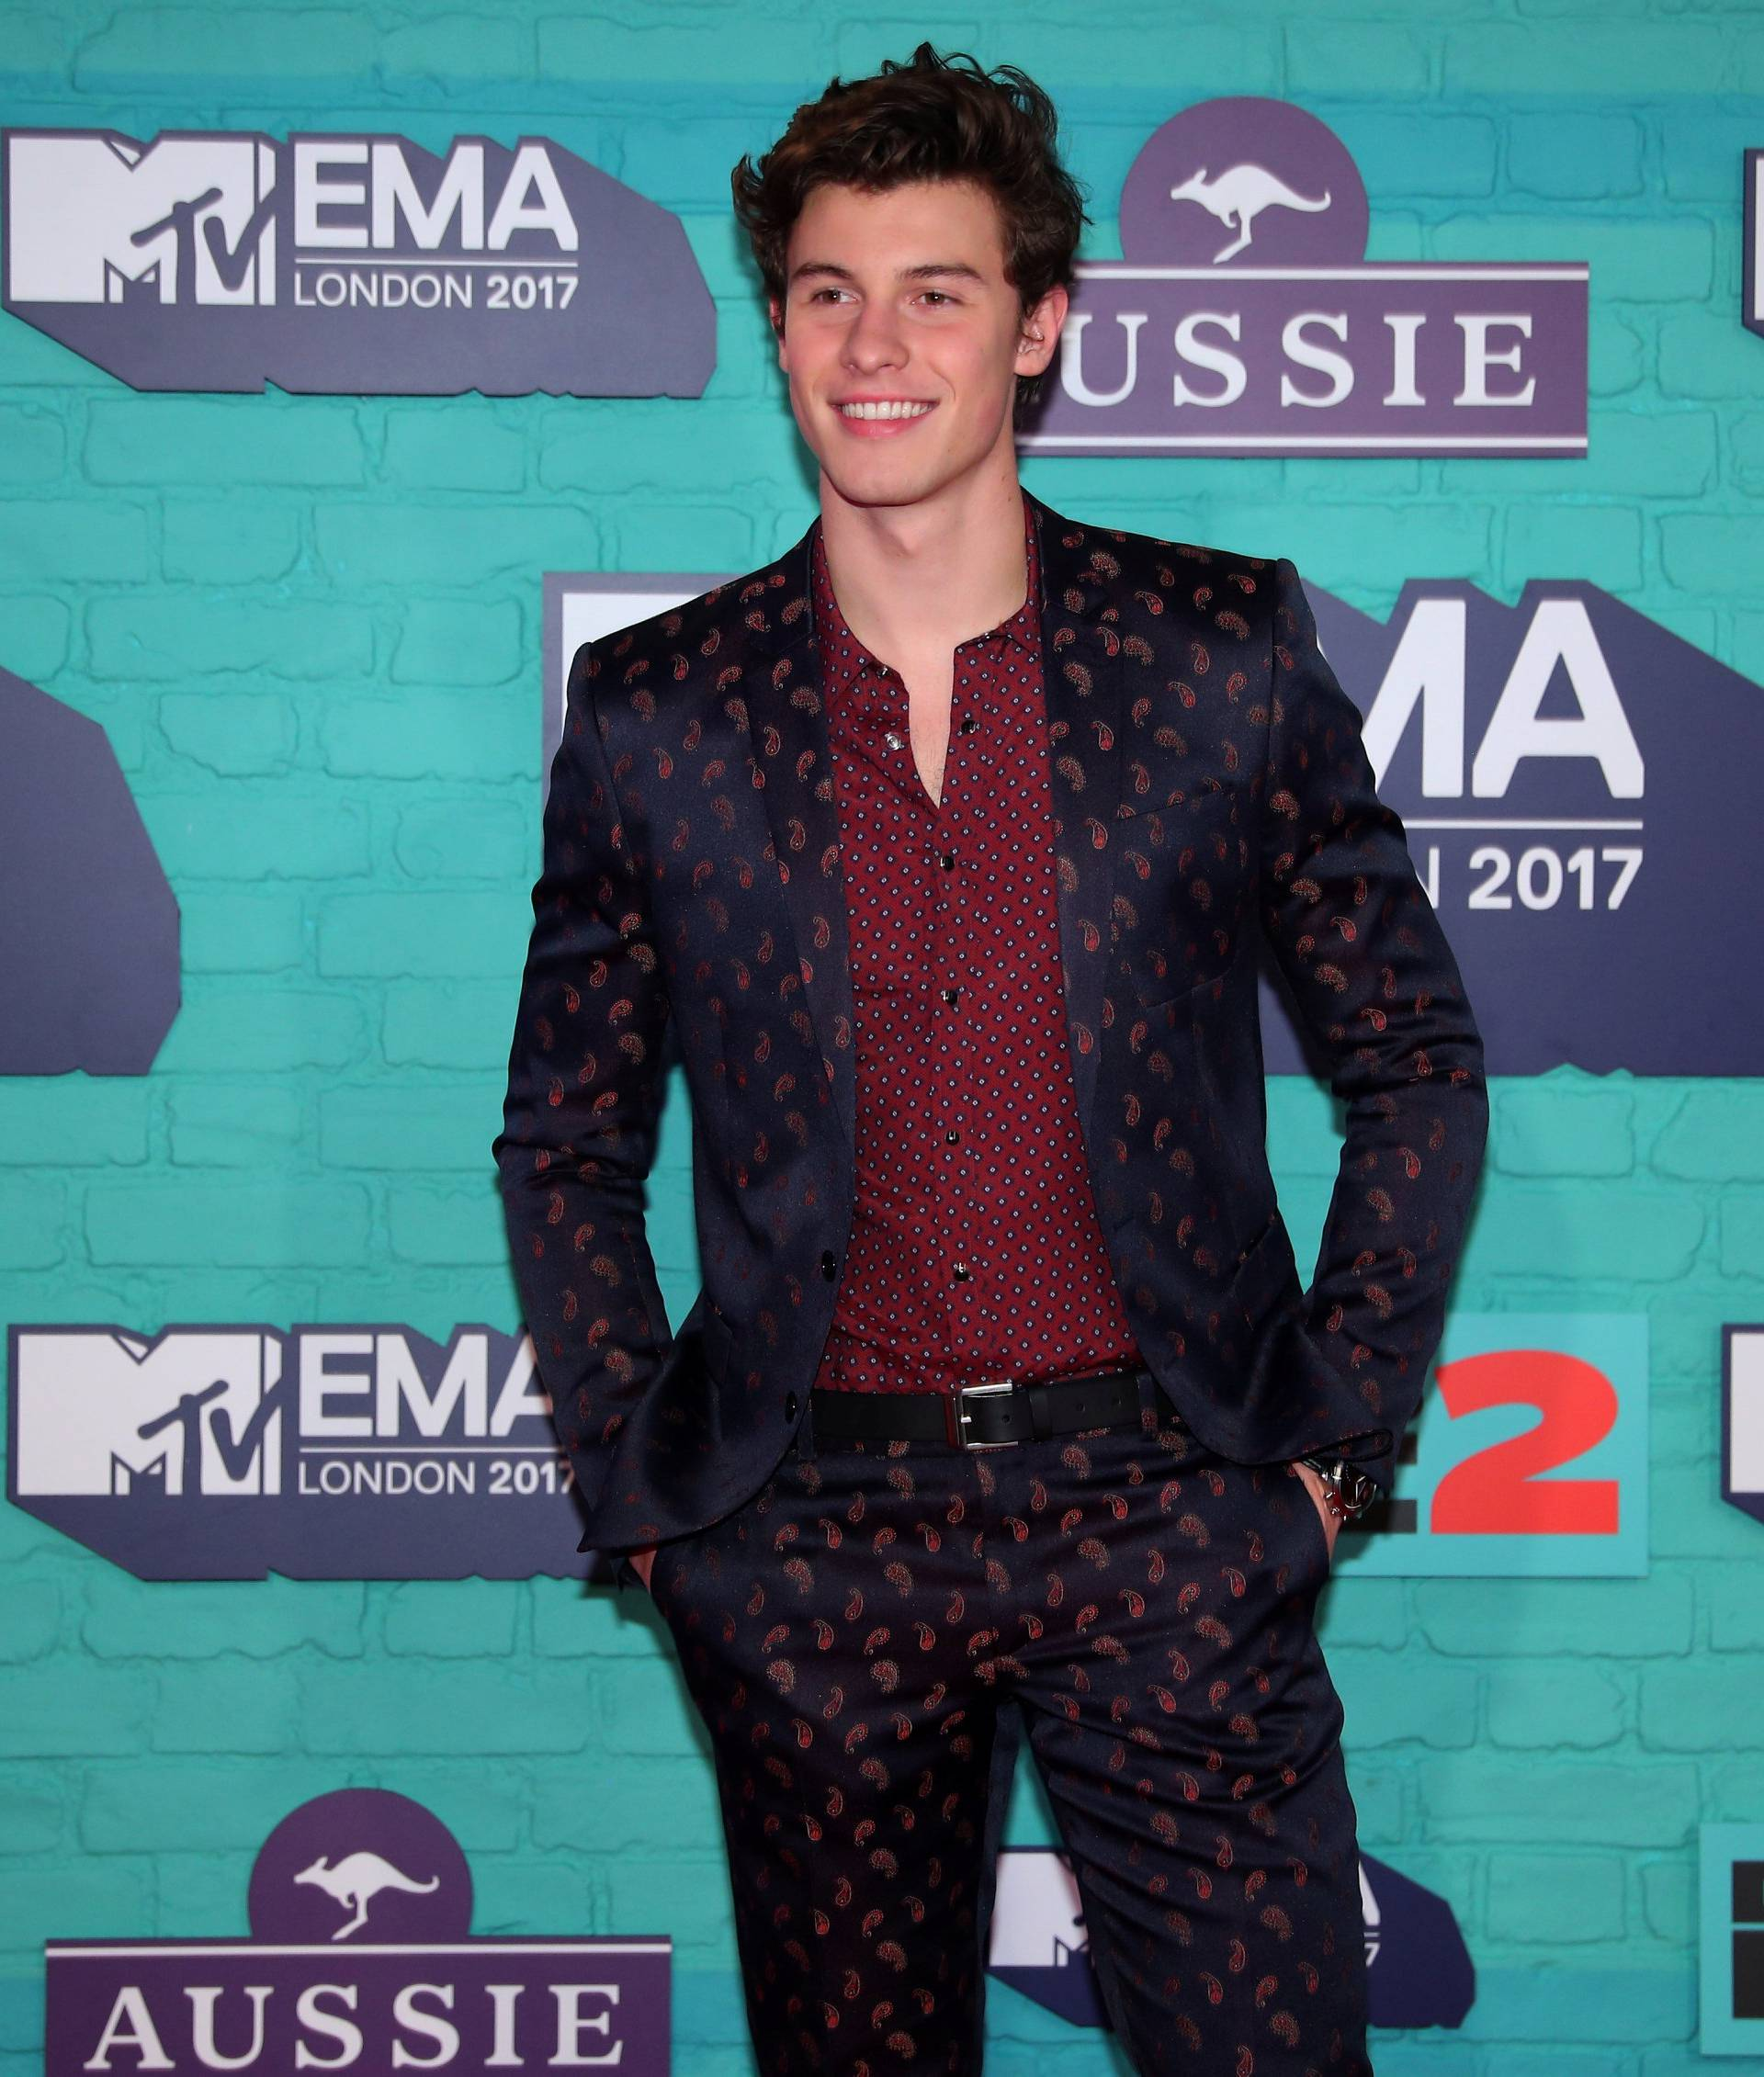 Canadian singer Shawn Mendes arrives at the 2017 MTV Europe Music Awards at Wembley Arena in London.